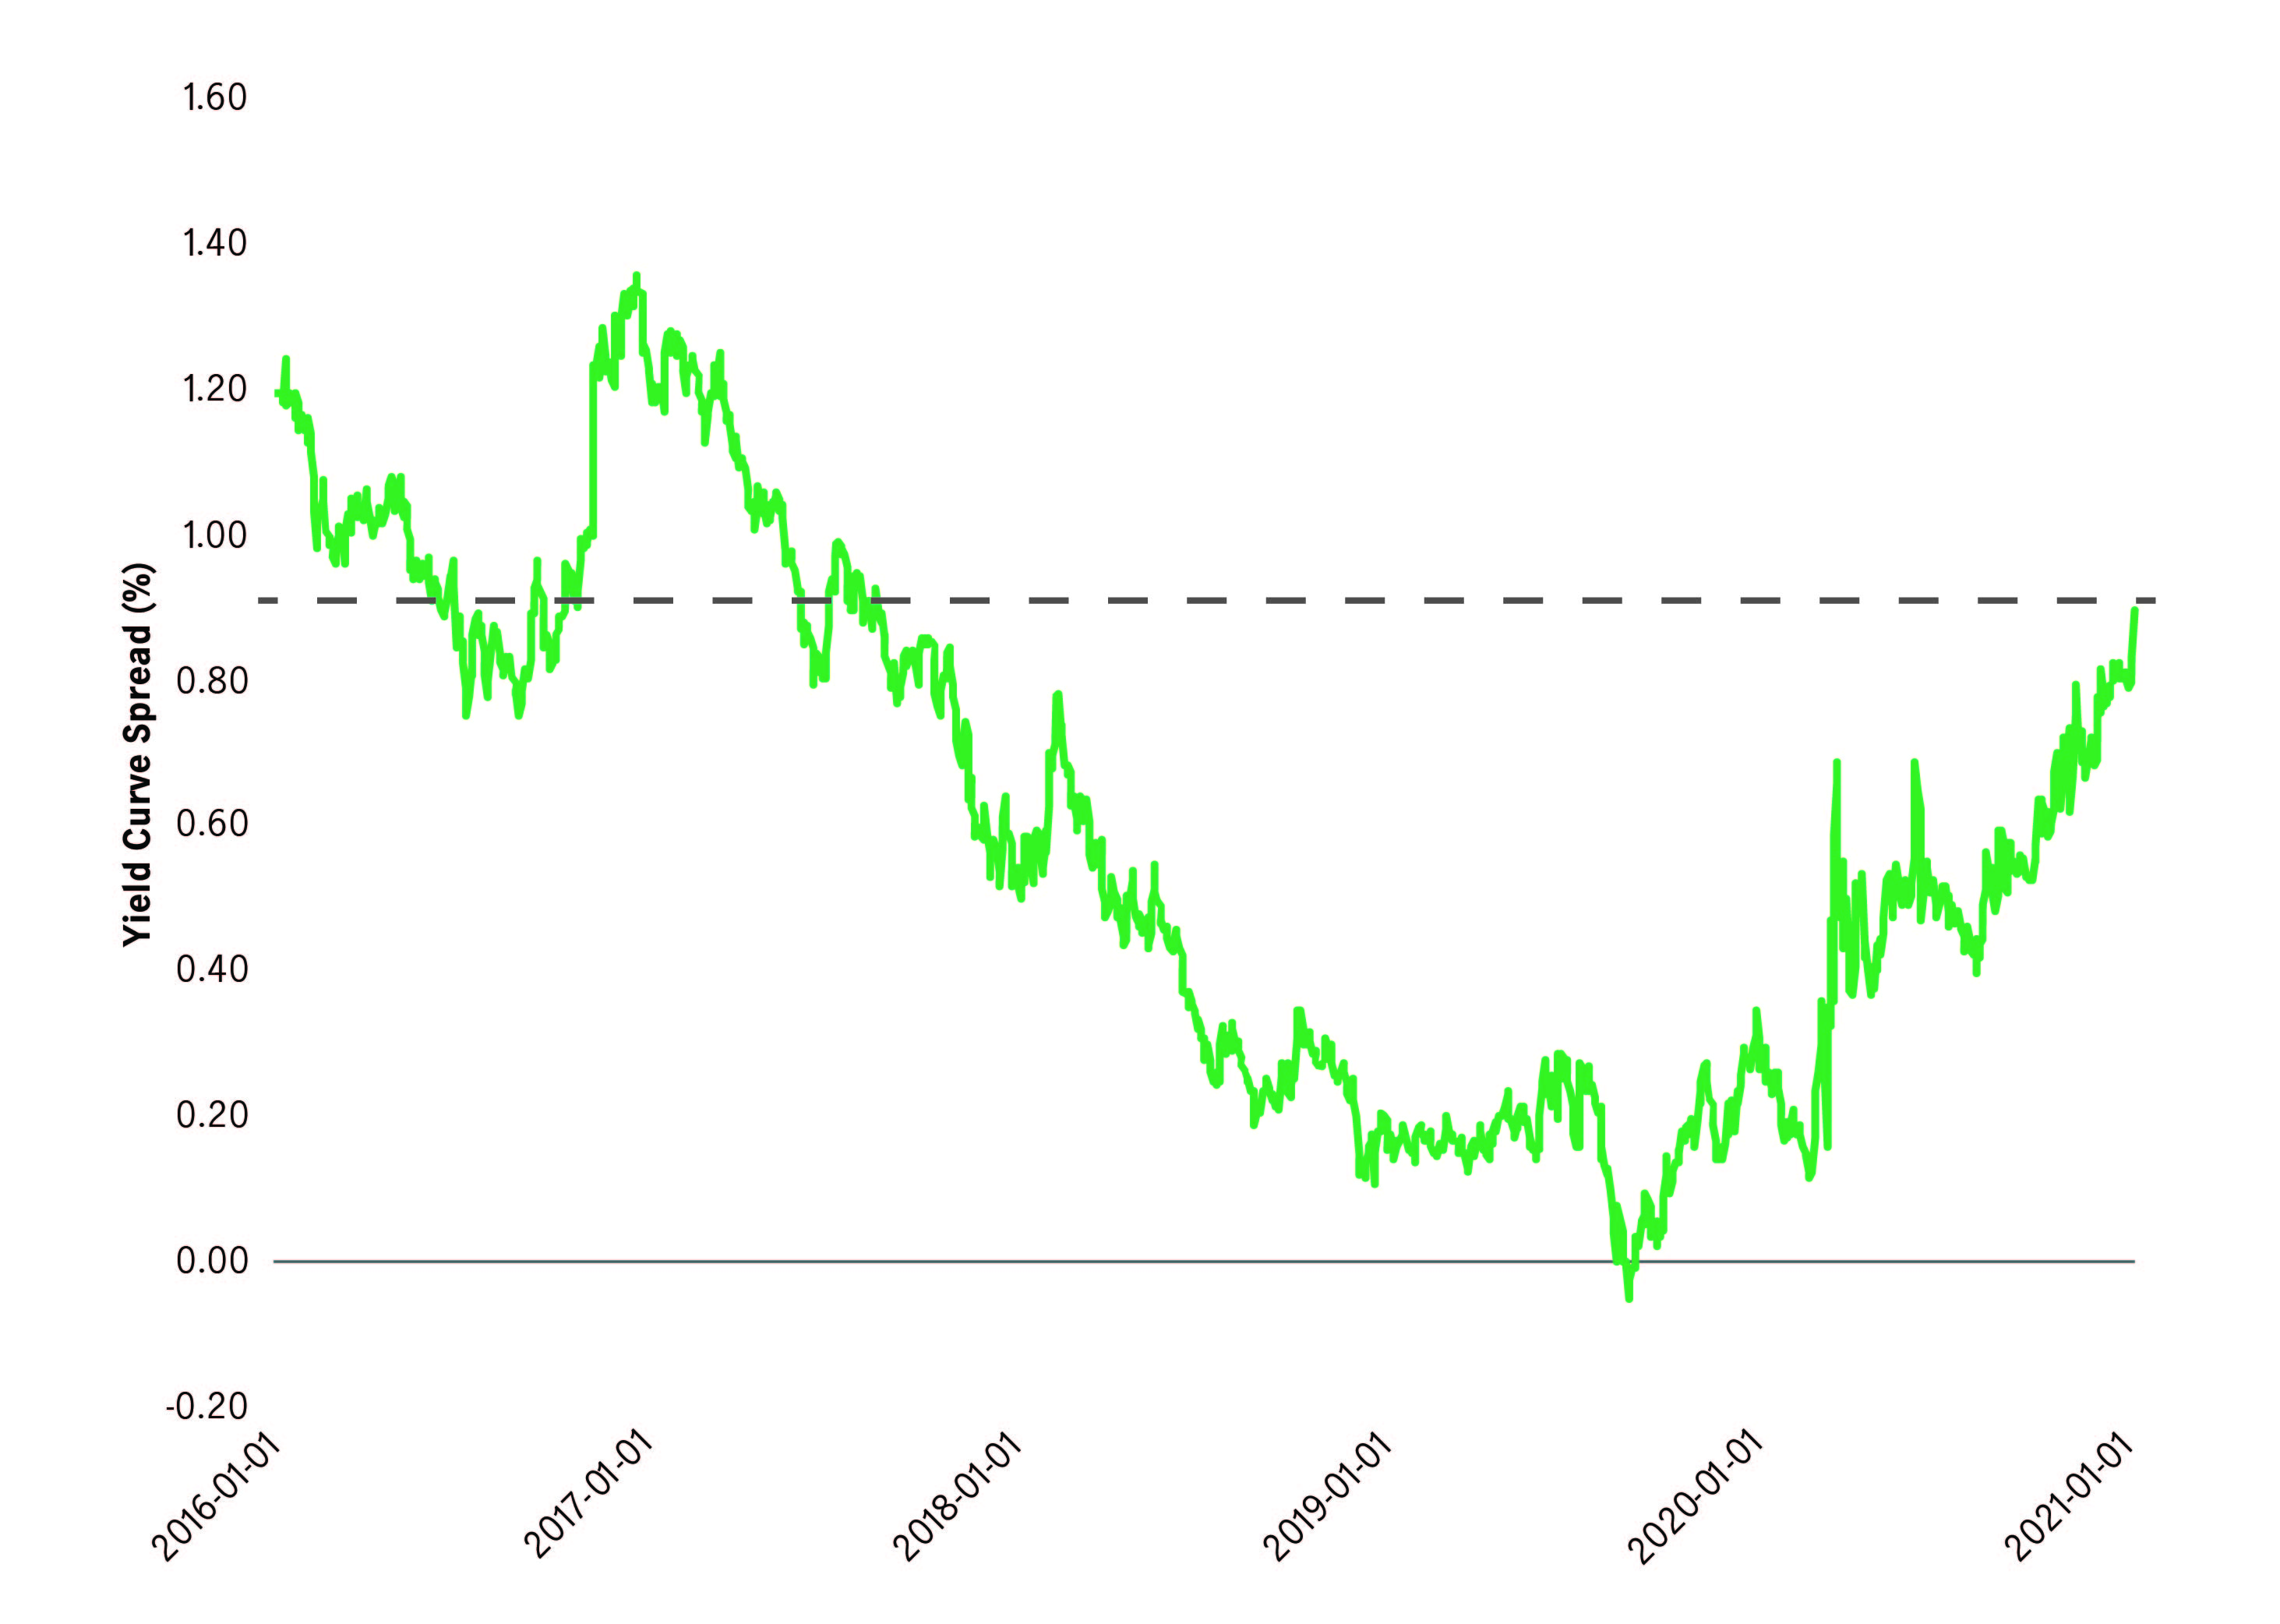 Line graph depicting US Treasury Yield 10-2 Spread over the last five years, from January 2016 to January 2021. Sourced from Manulife Investment Management and Bloomberg.